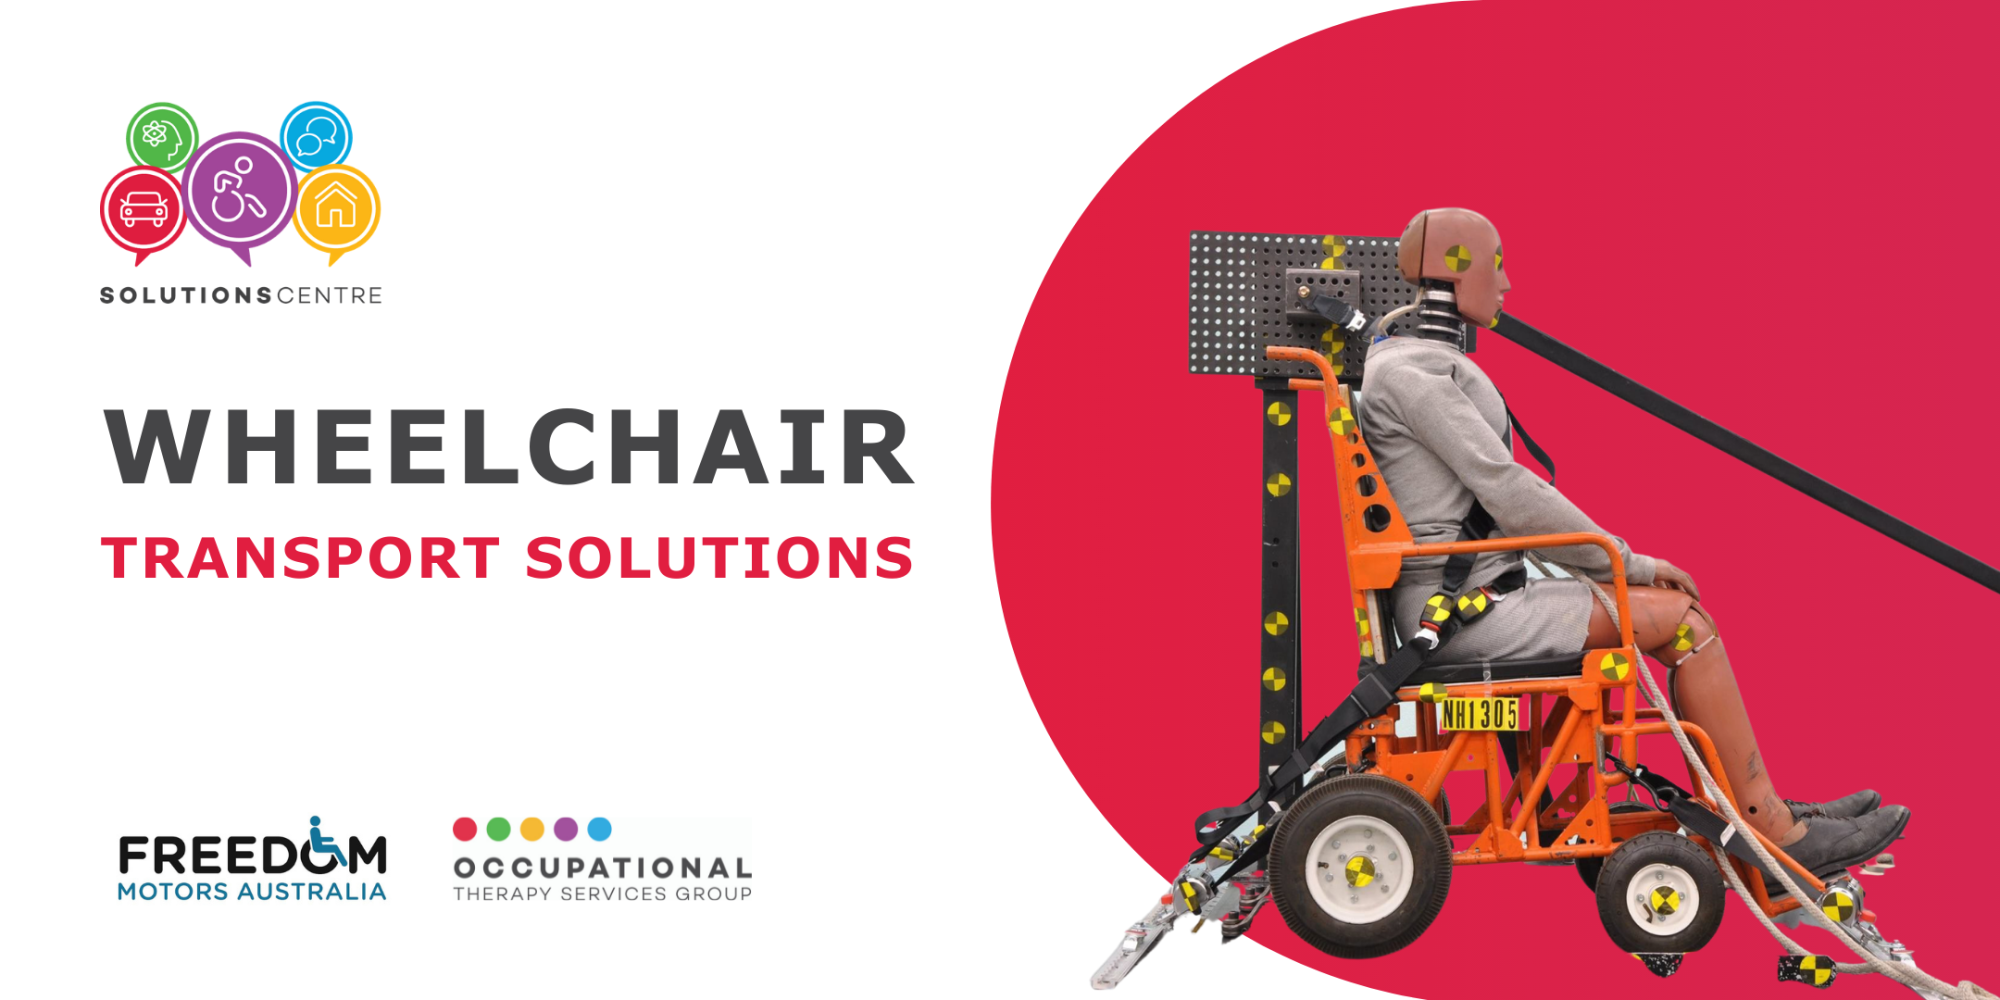 WHEELCHAIRS TRANSPORT SOLUTIONS